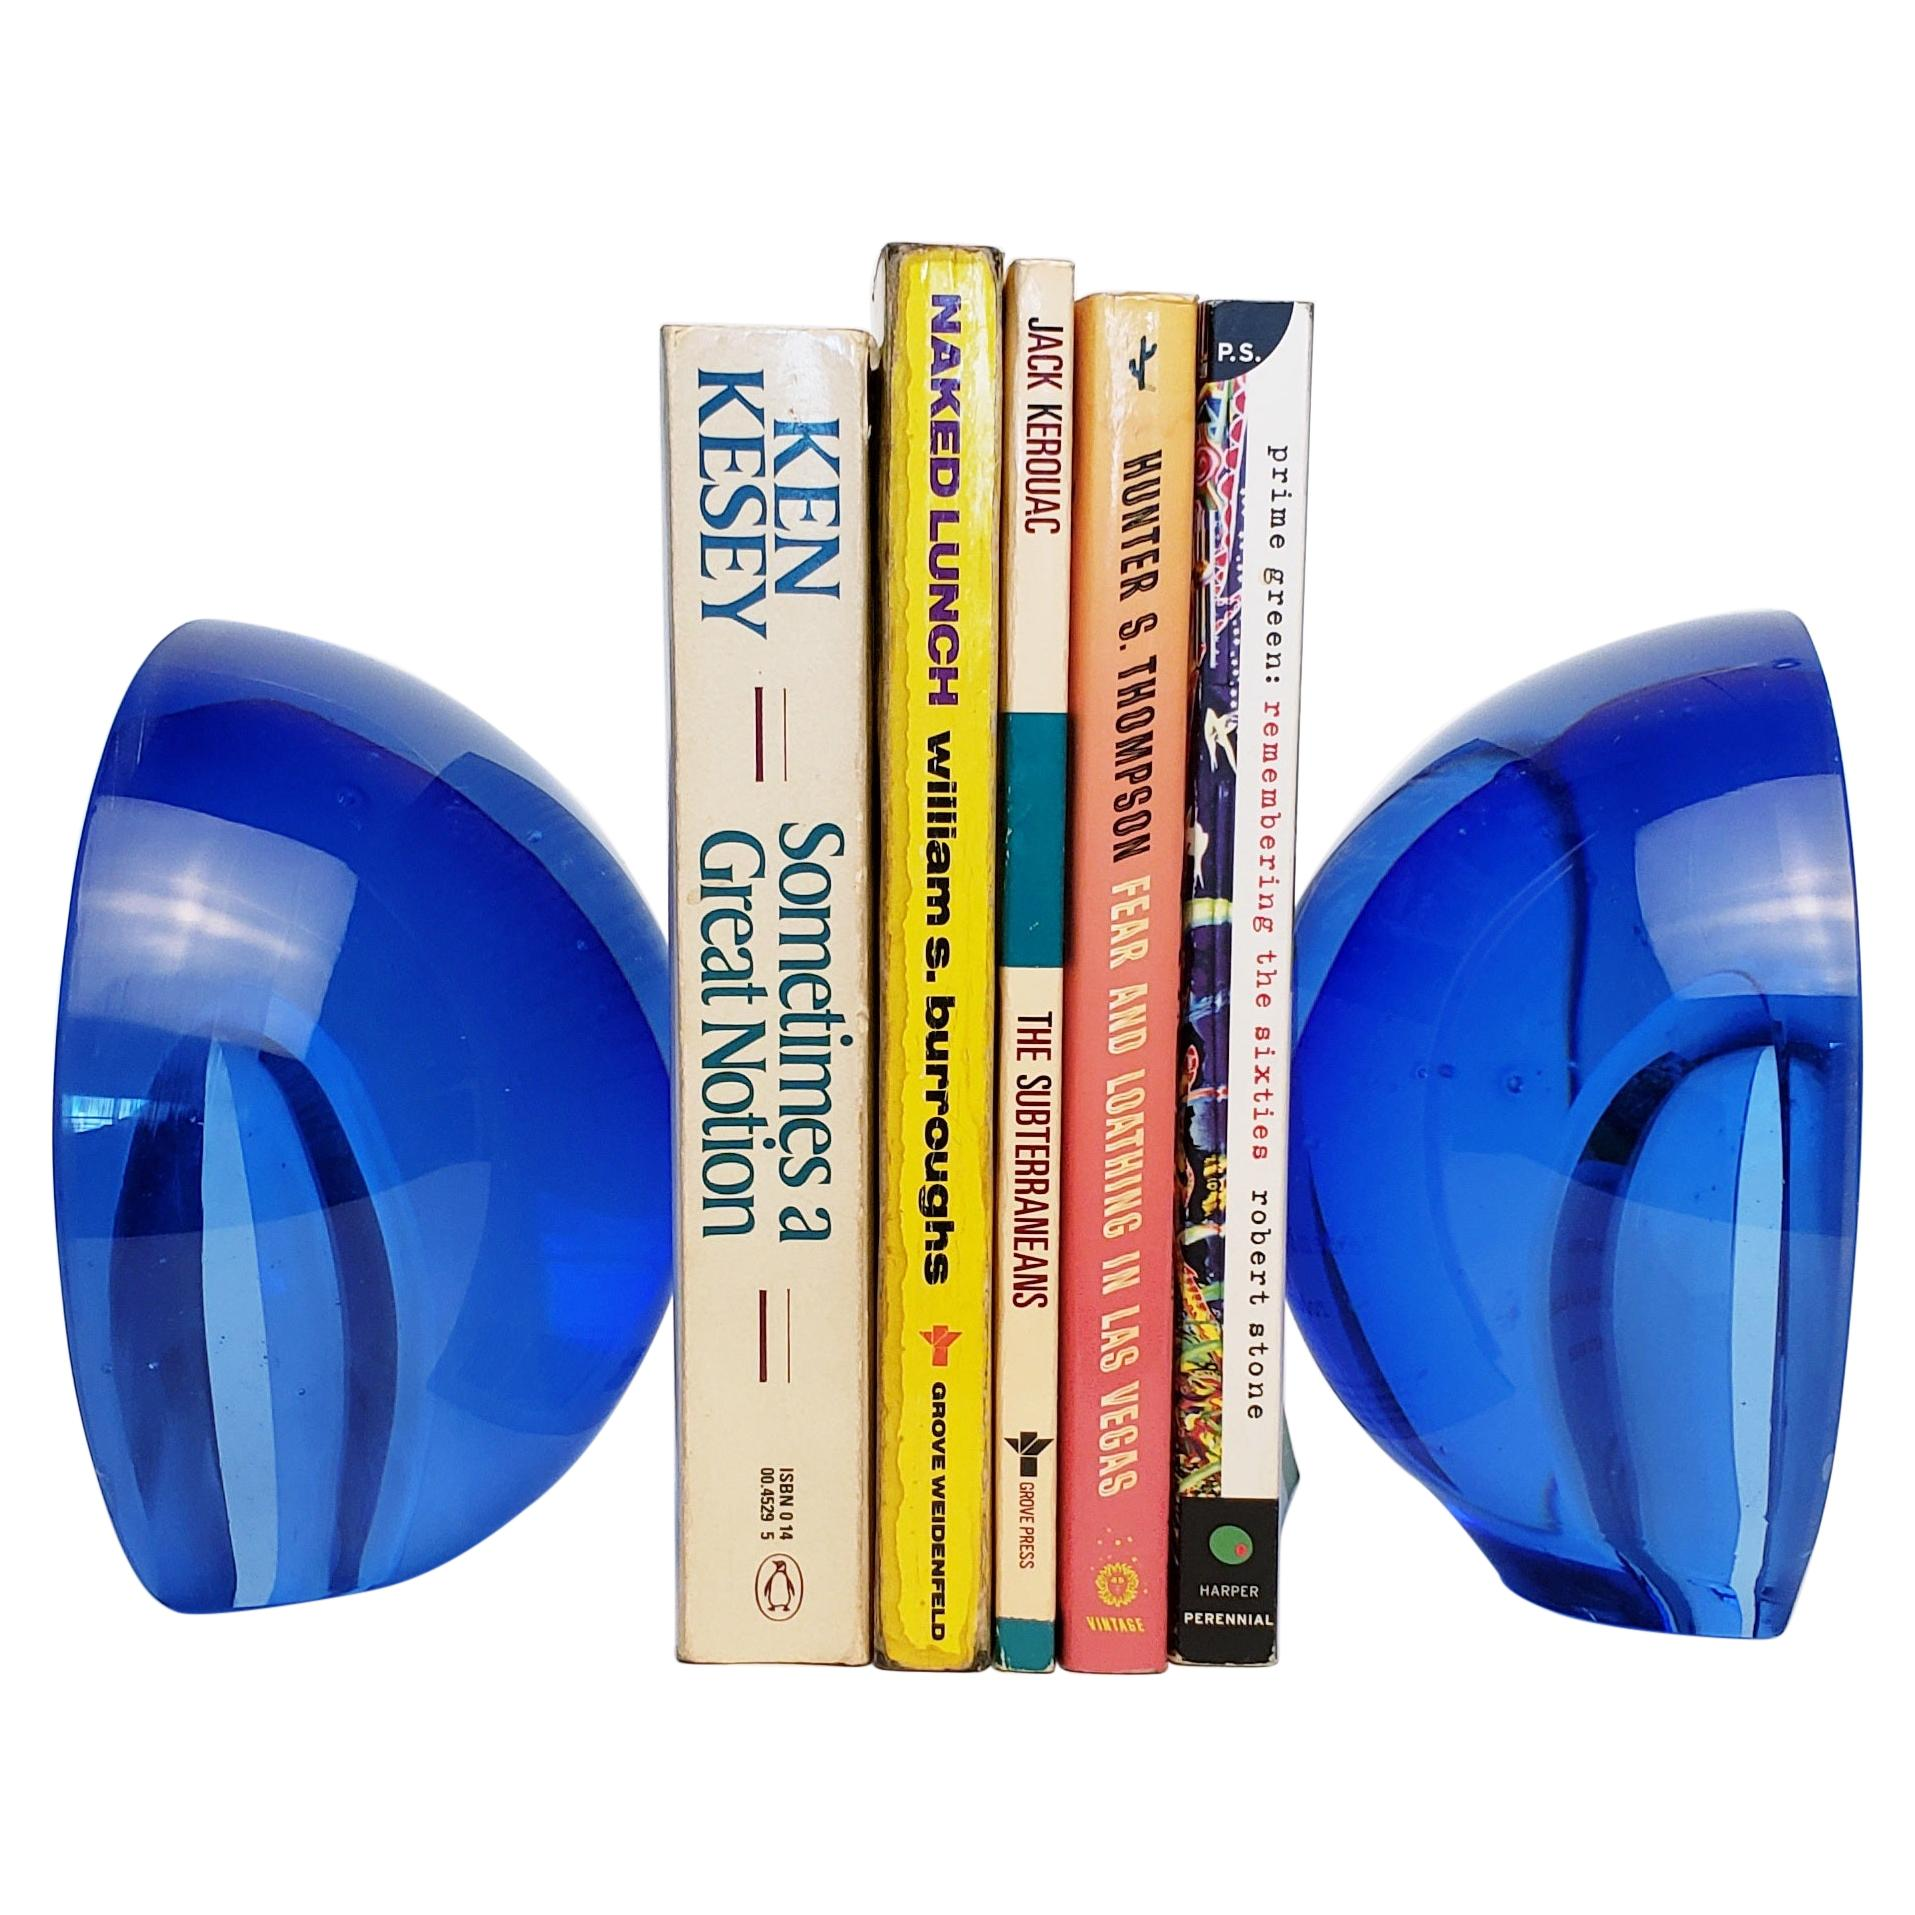 Sonic Bookends - Handmade Contemporary Glass Bookends - Customizable